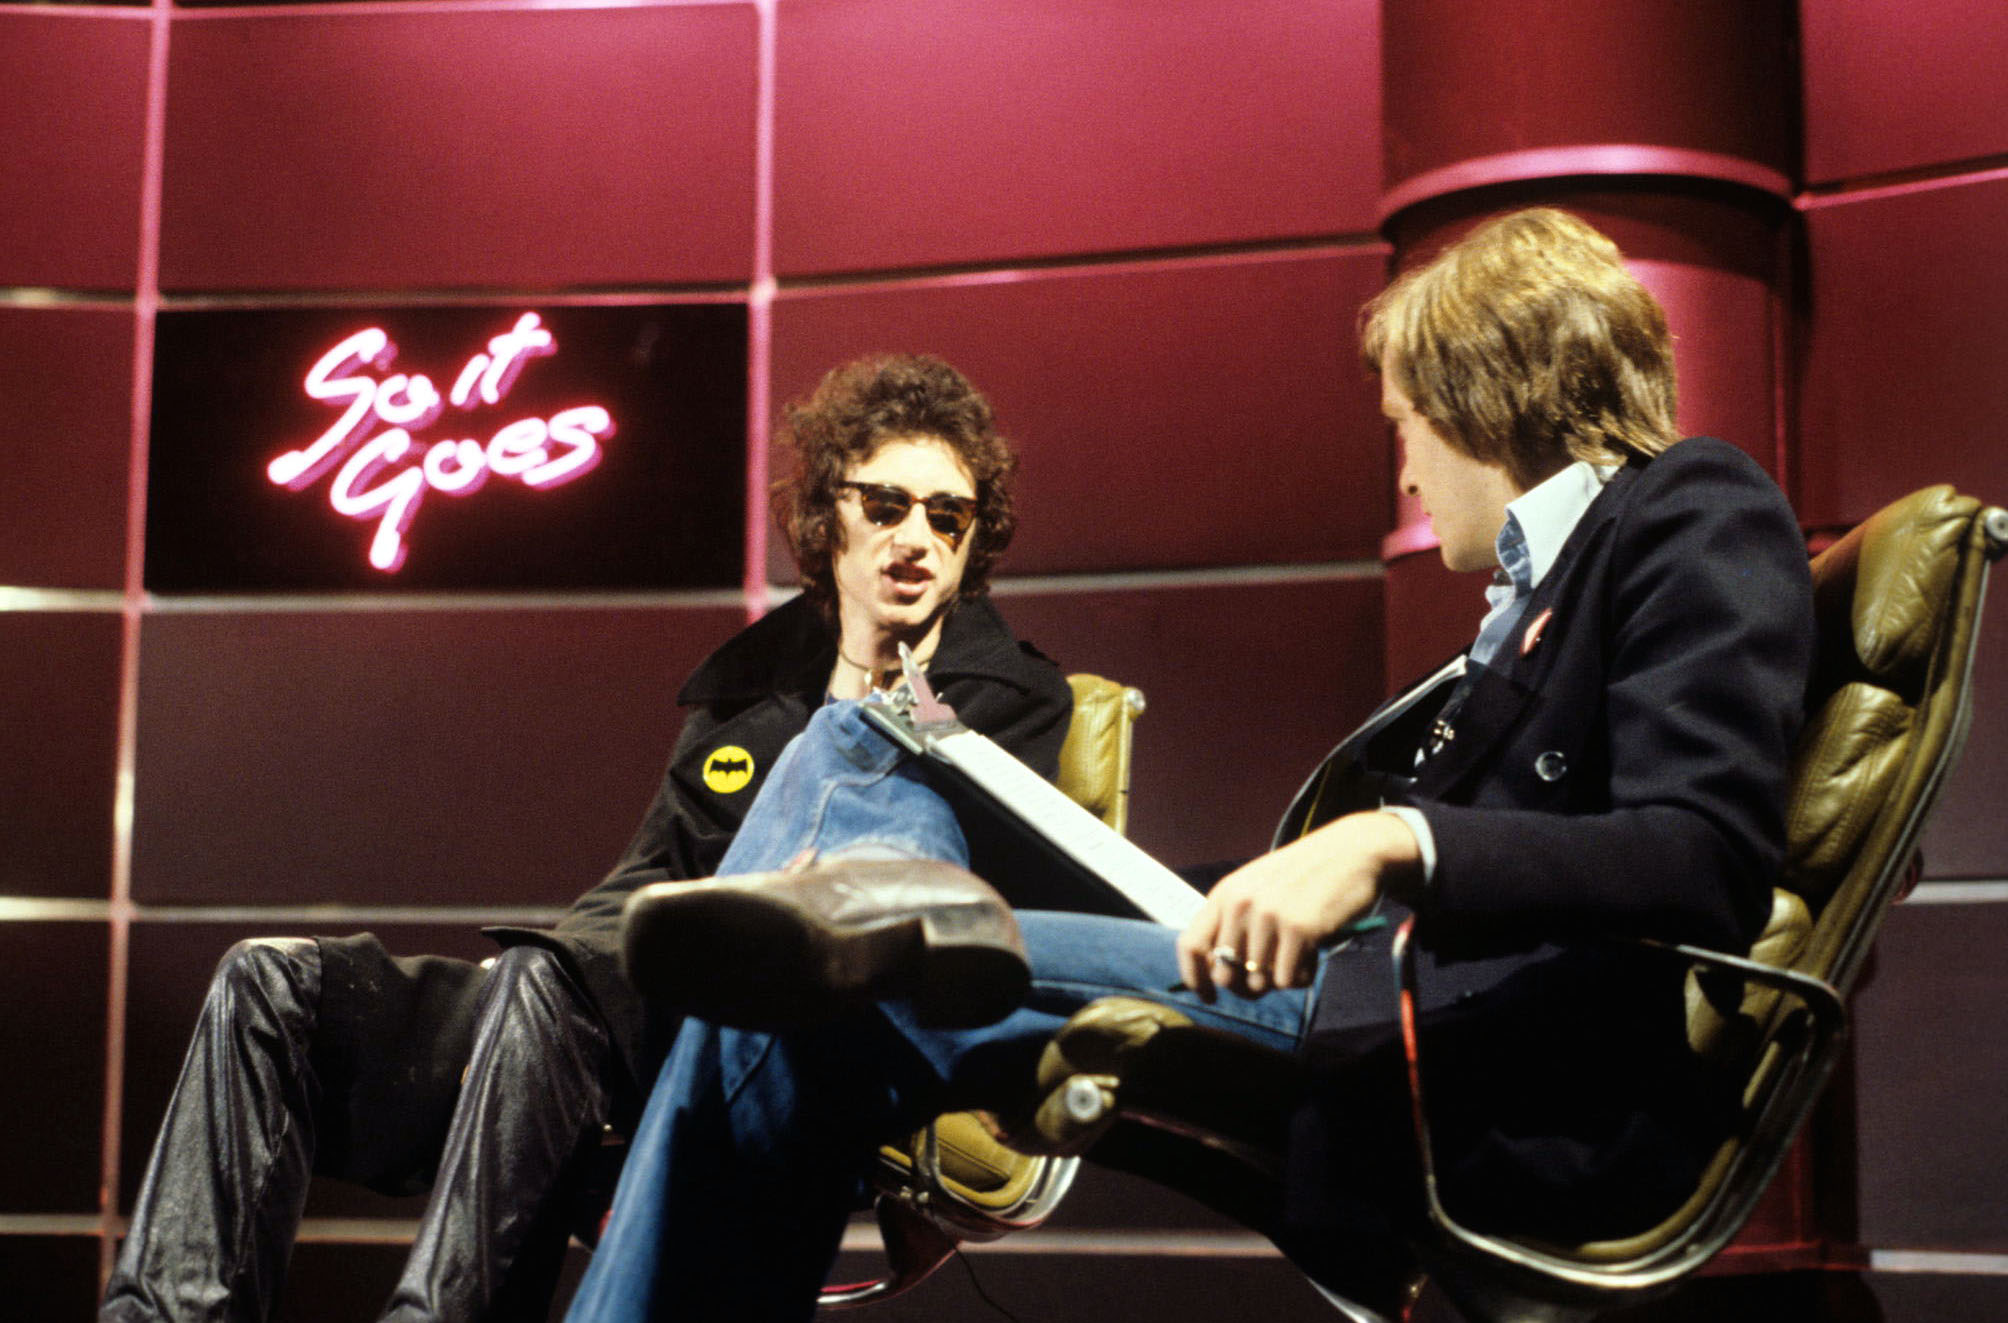 'So it Goes' TV - 1976 - John Cooper Clarke, Tony Wilson